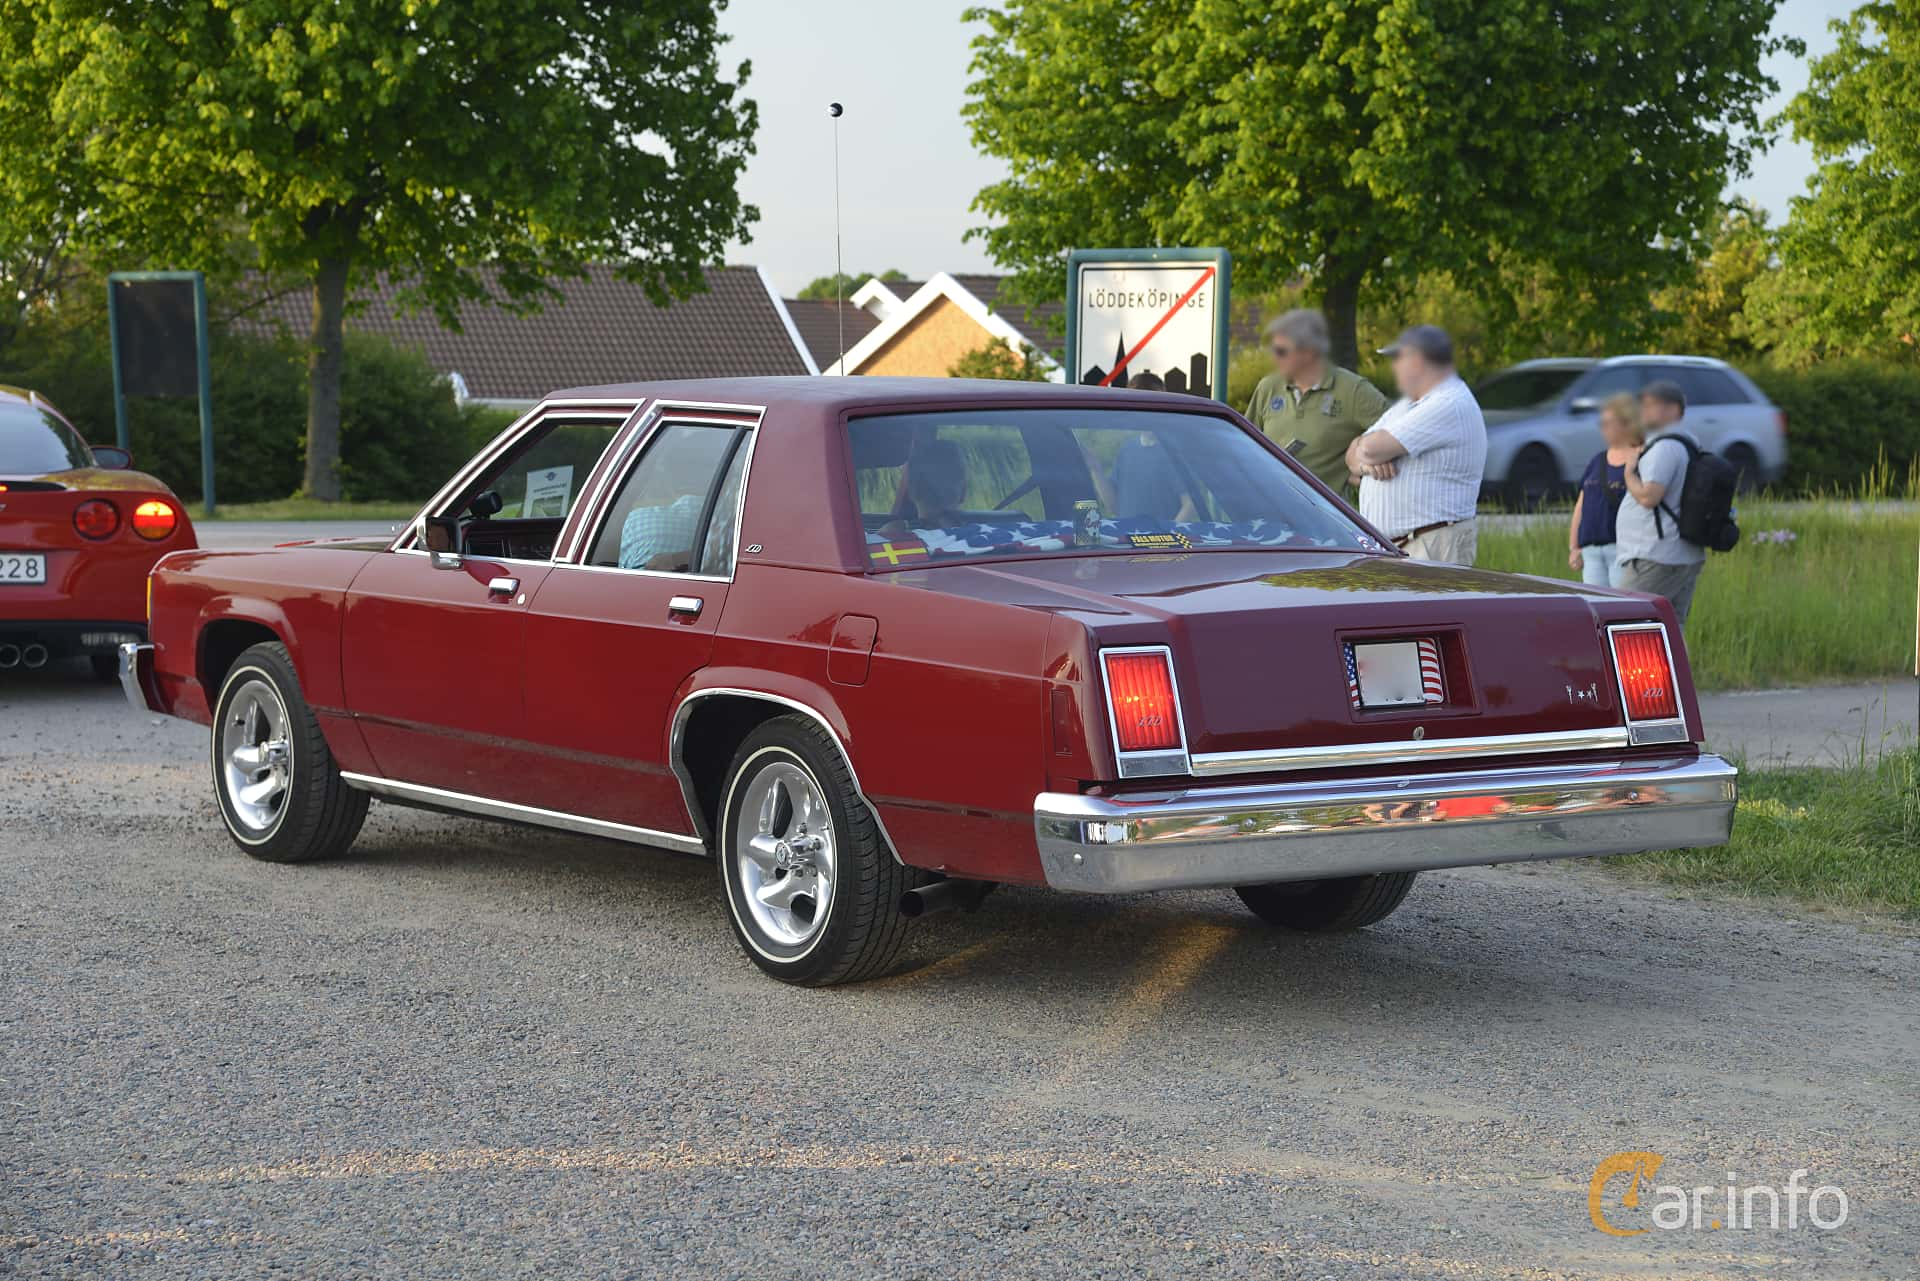 2 Images Of Ford Ltd Sedan 42 V8 Automatic 124hp 1982 By Johanb 1970 Crown Victoria Back Side 124ps At Tisdagstrffarna